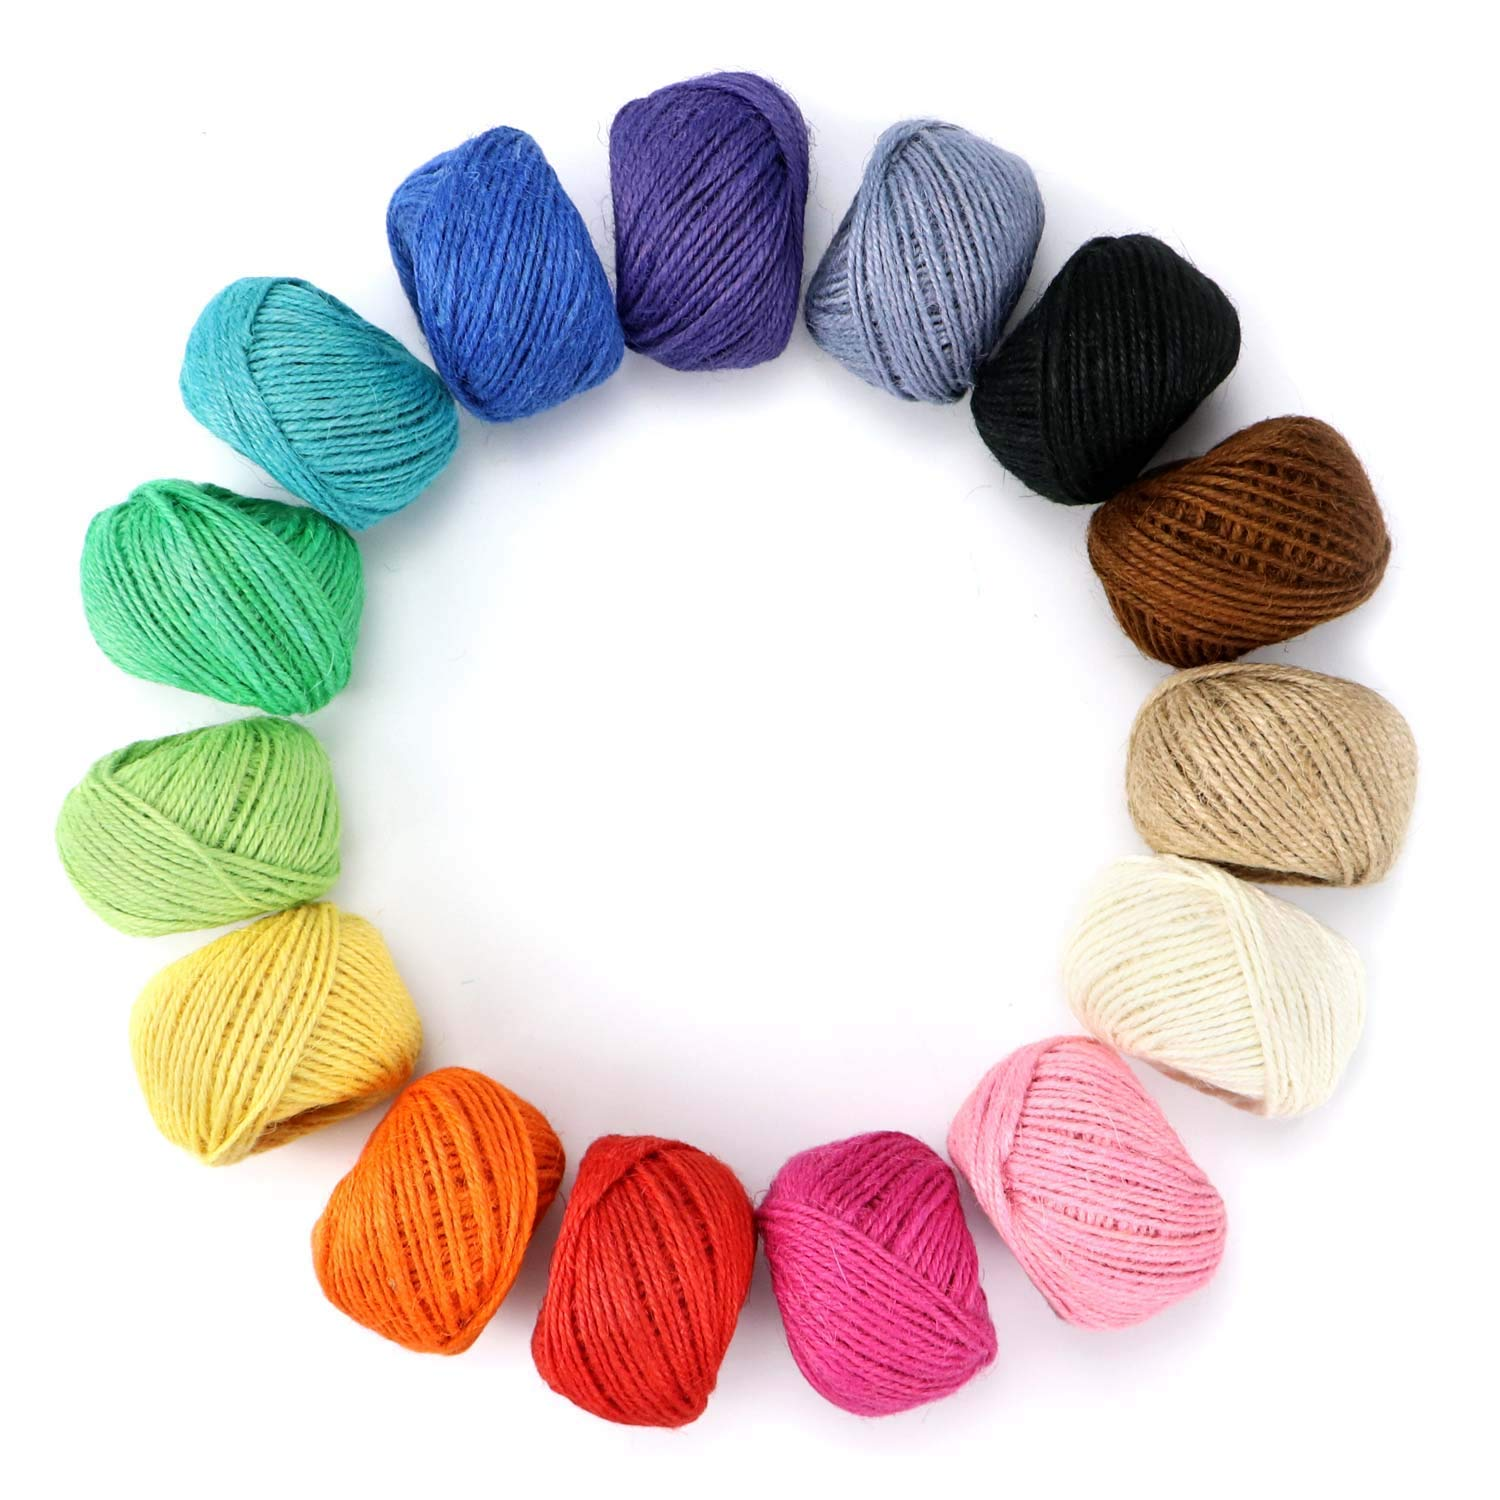 Cotton Bakers Twine HULISEN 15 Rolls Colourful Twine String for Artworks DIY Crafts Picture Display and Embellishments Gift Wrapping